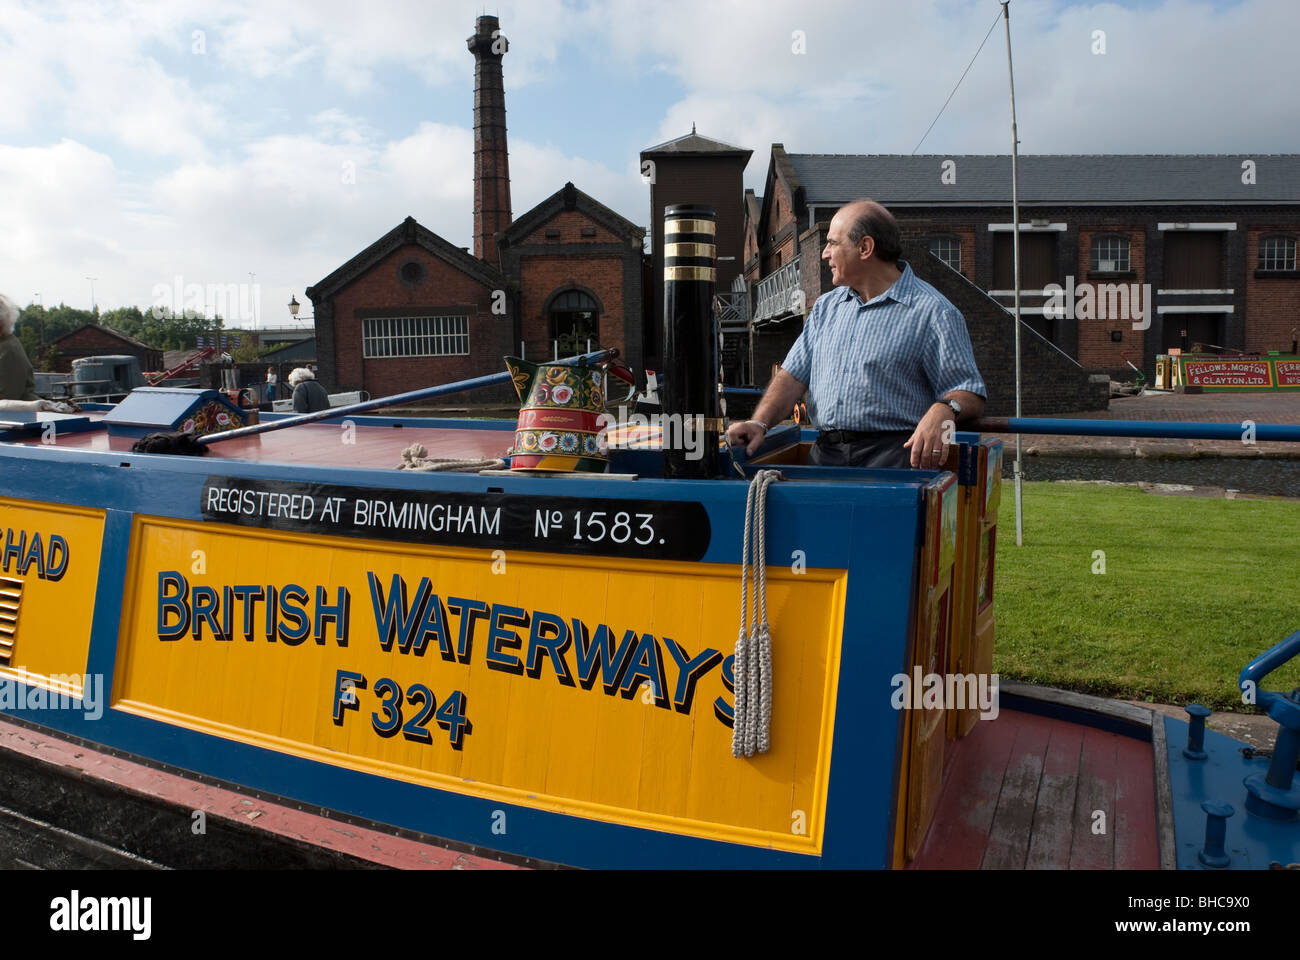 Hercule Poirot David Suchet Actor on Canal boat - Stock Image